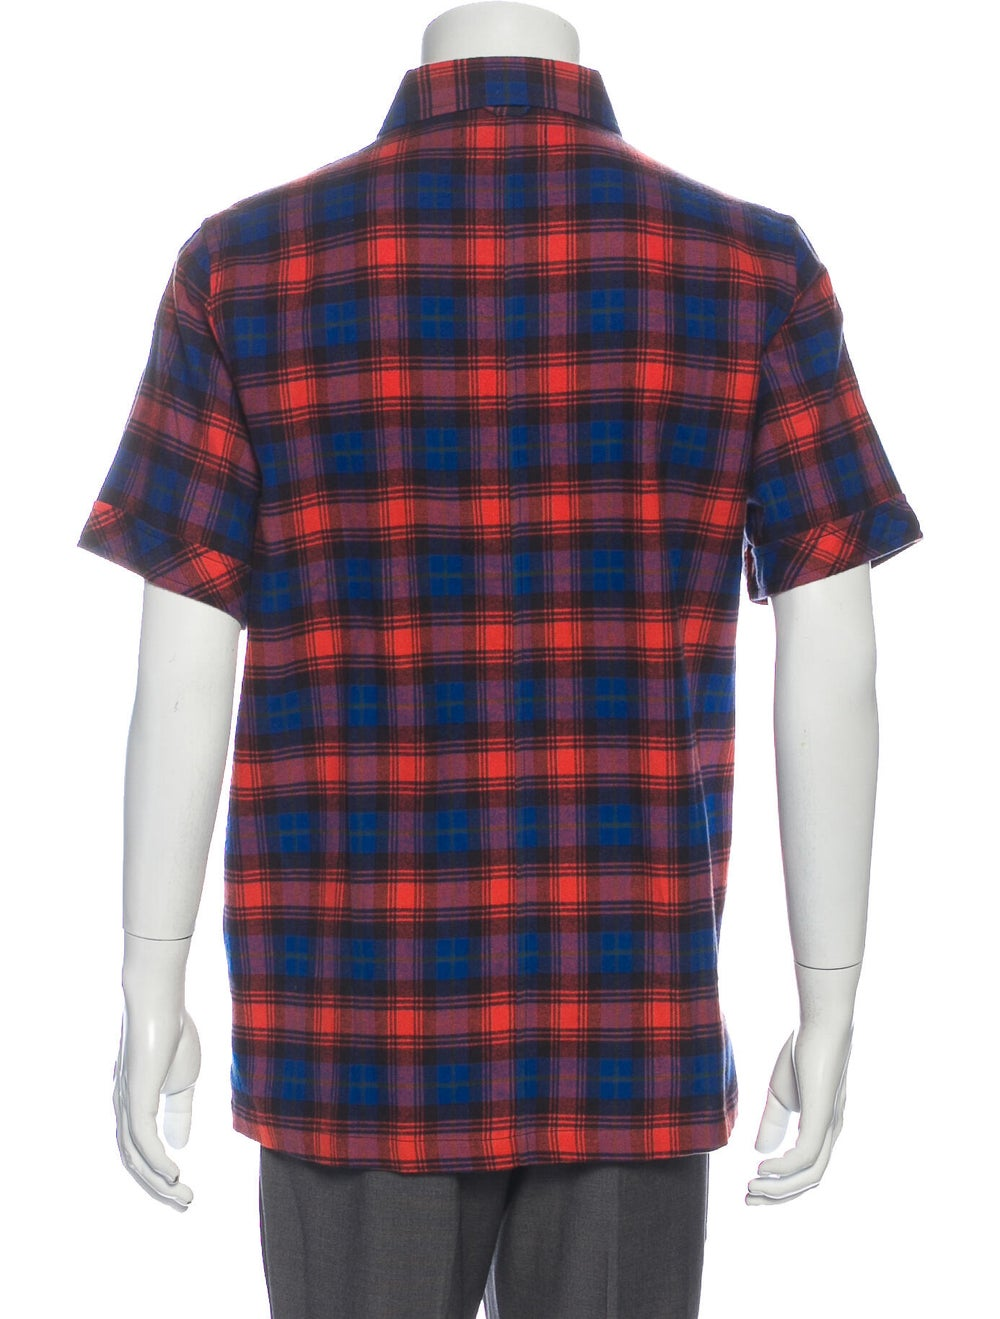 Ovadia & Sons 2019 Plaid Print Shirt Blue - image 3